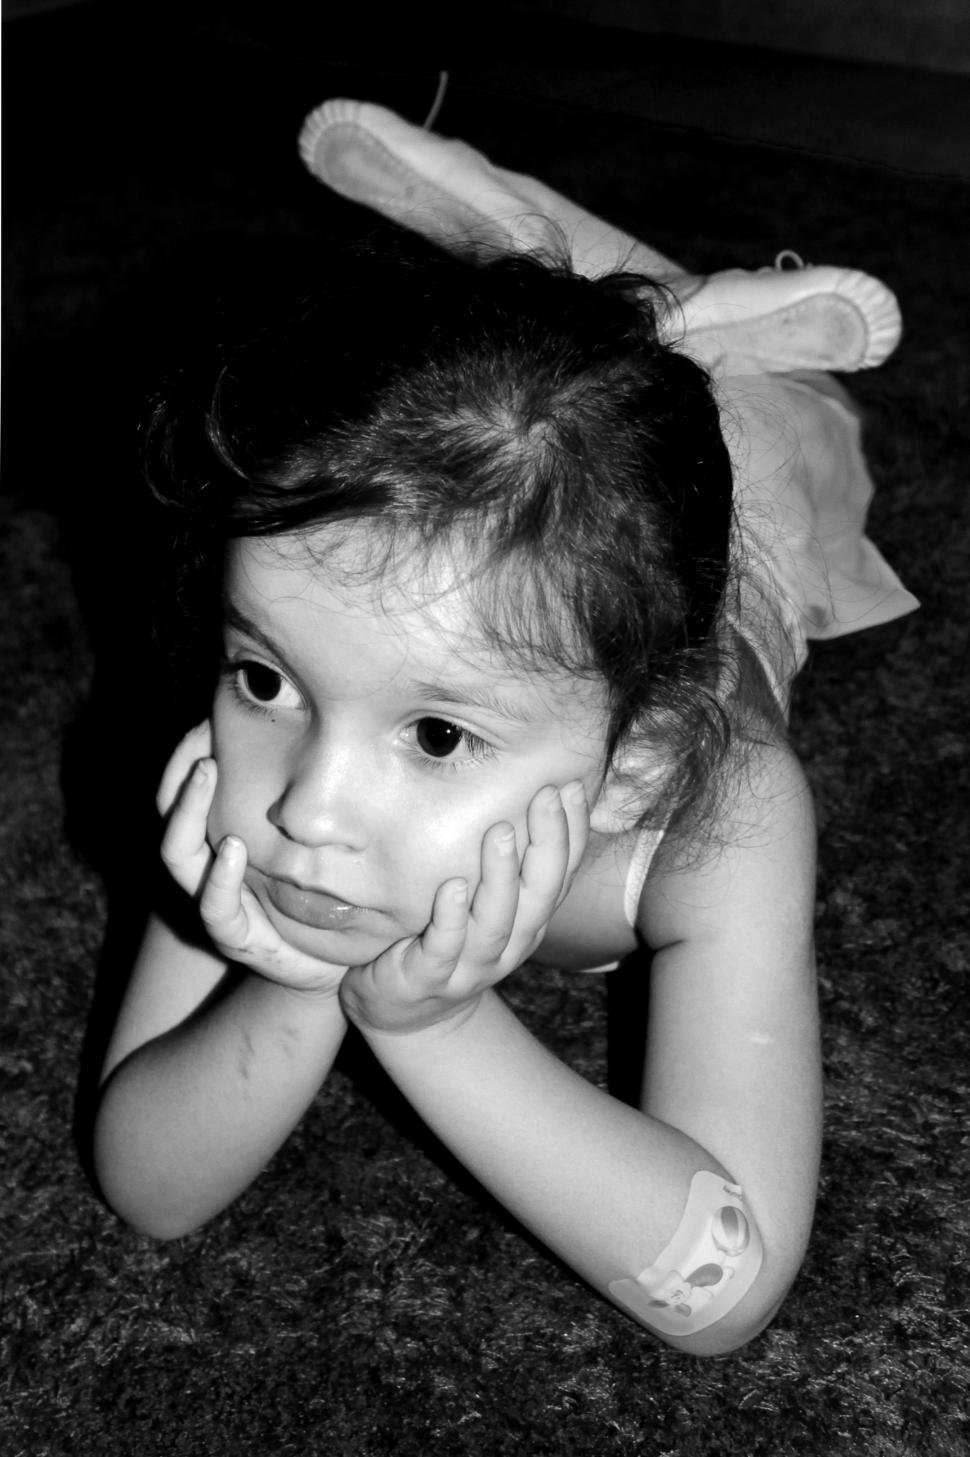 Download Free Stock HD Photo of Thoughtful young ballerina with a band aid on the elbow Online